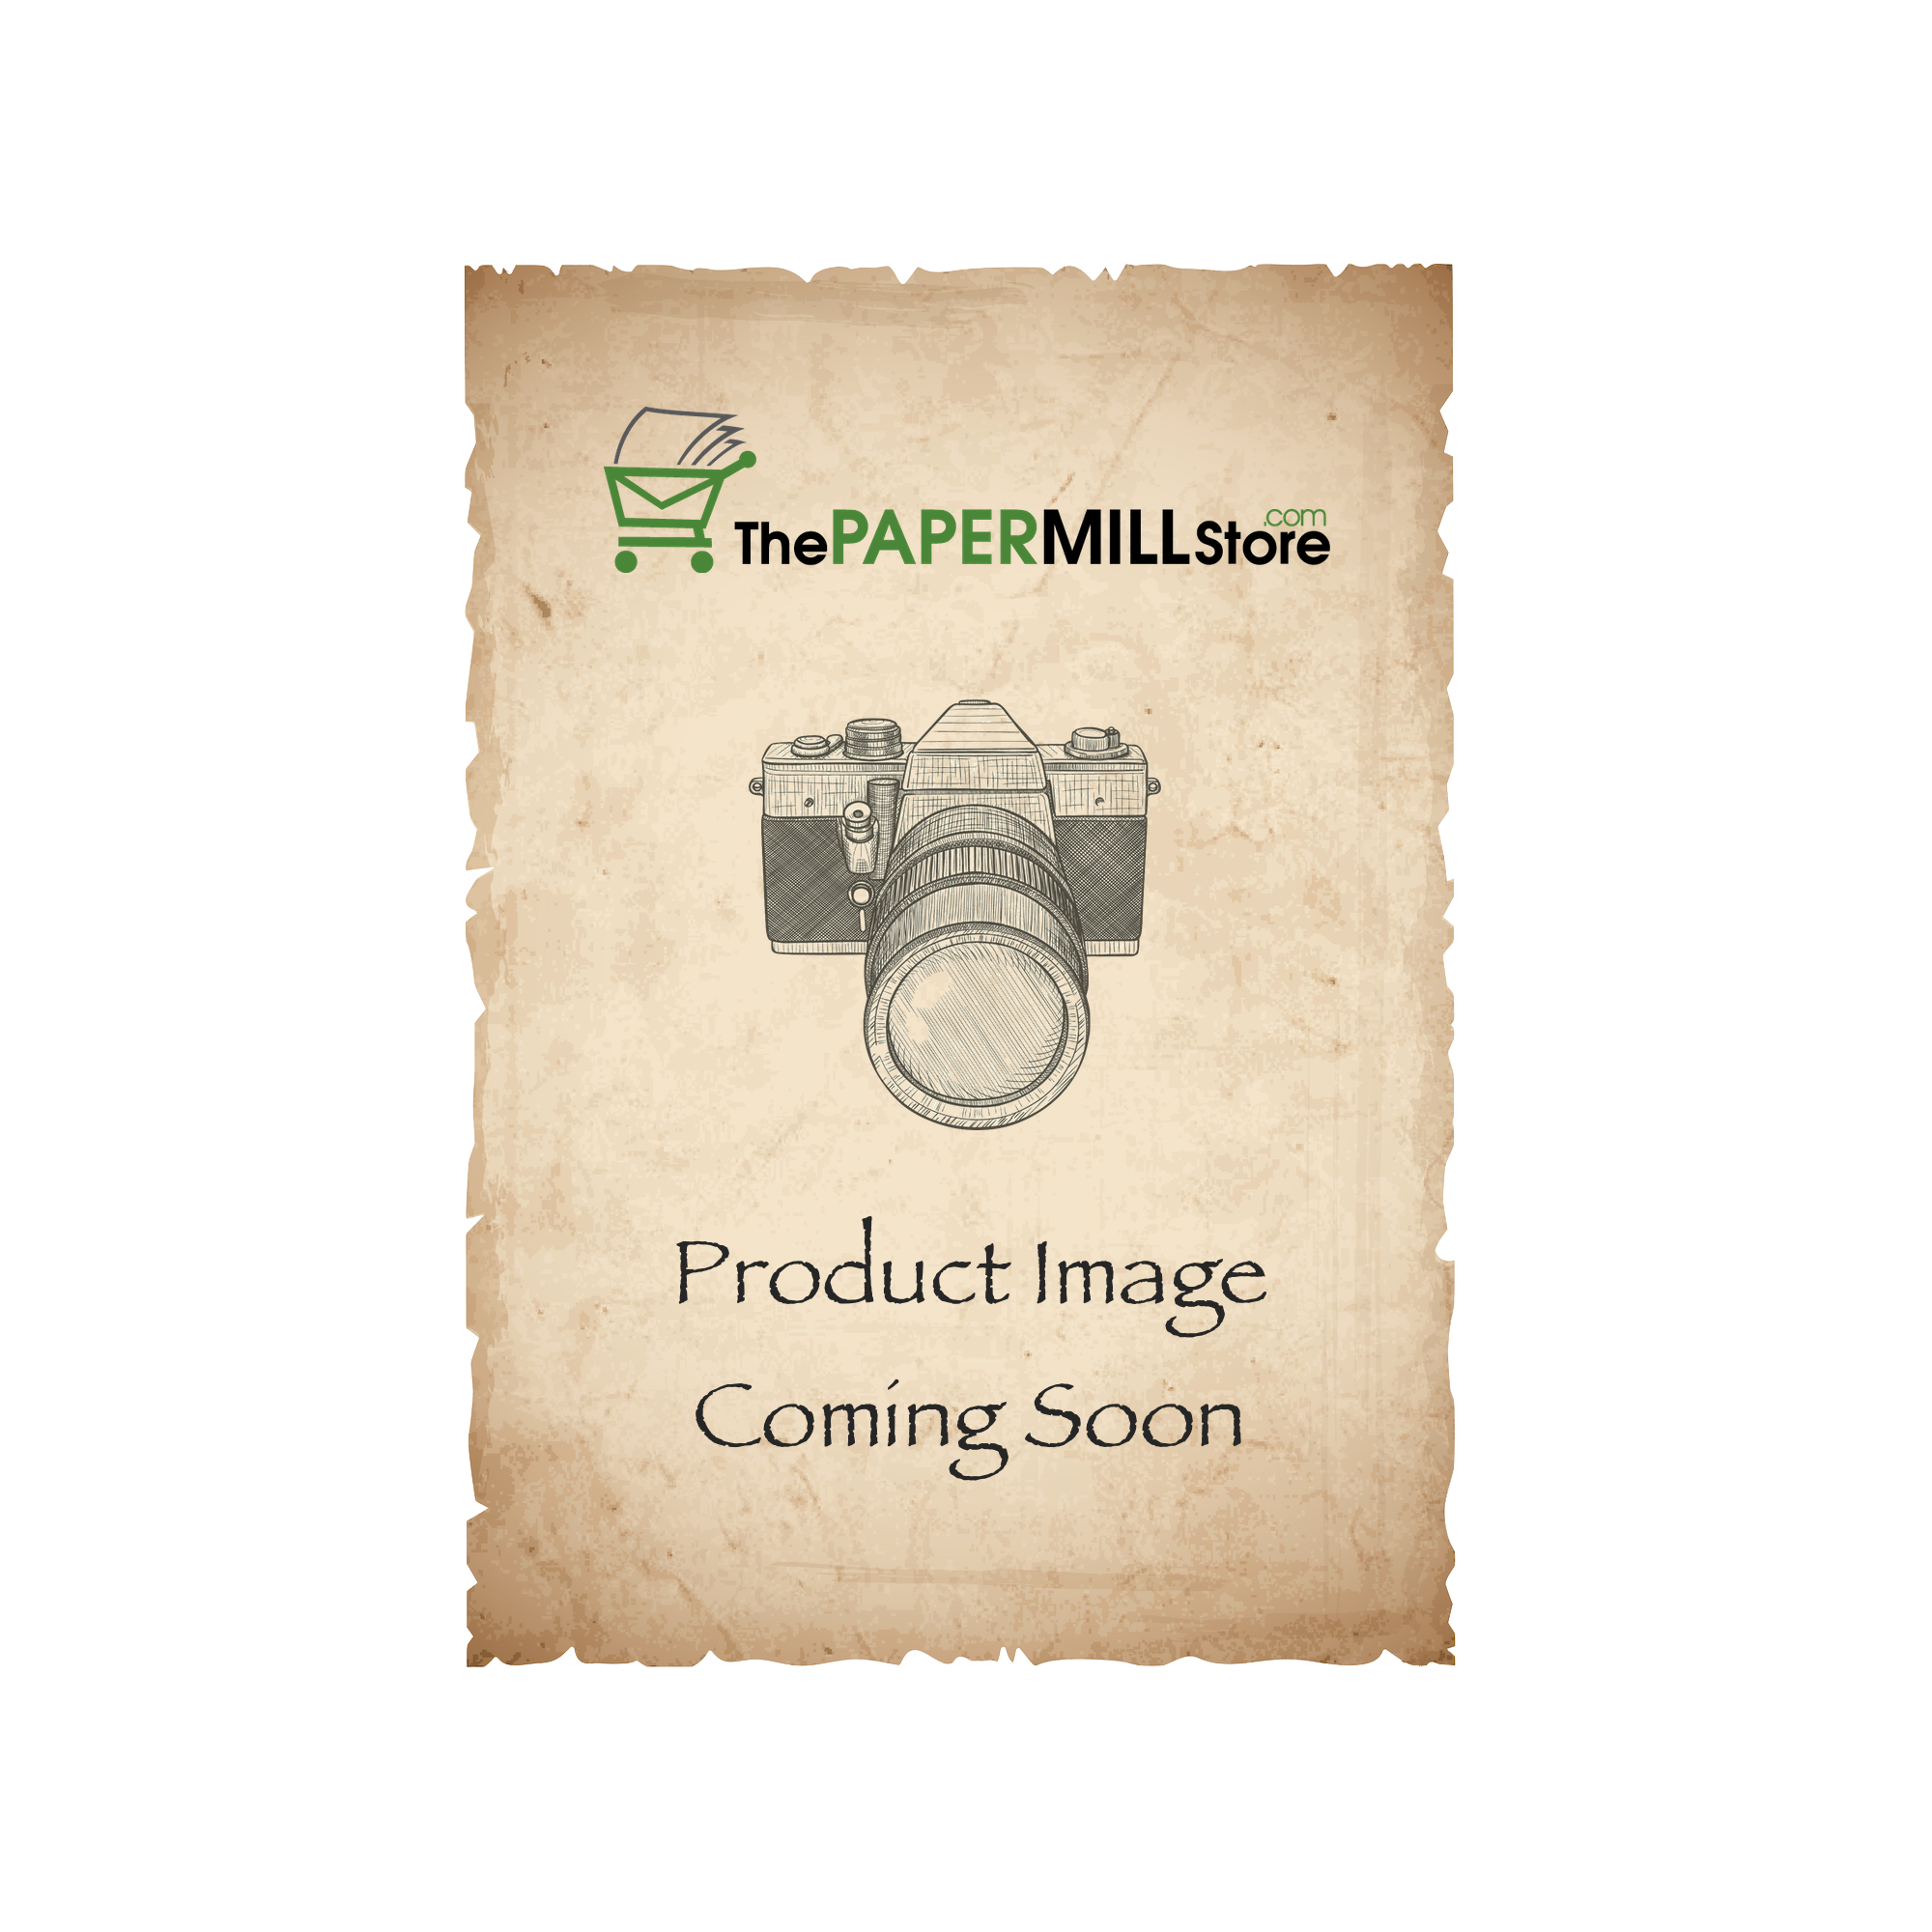 CLASSIC CREST Classic Cream Paper - 8 1/2 x 11 in 24 lb Writing Smooth Watermarked 500 per Ream